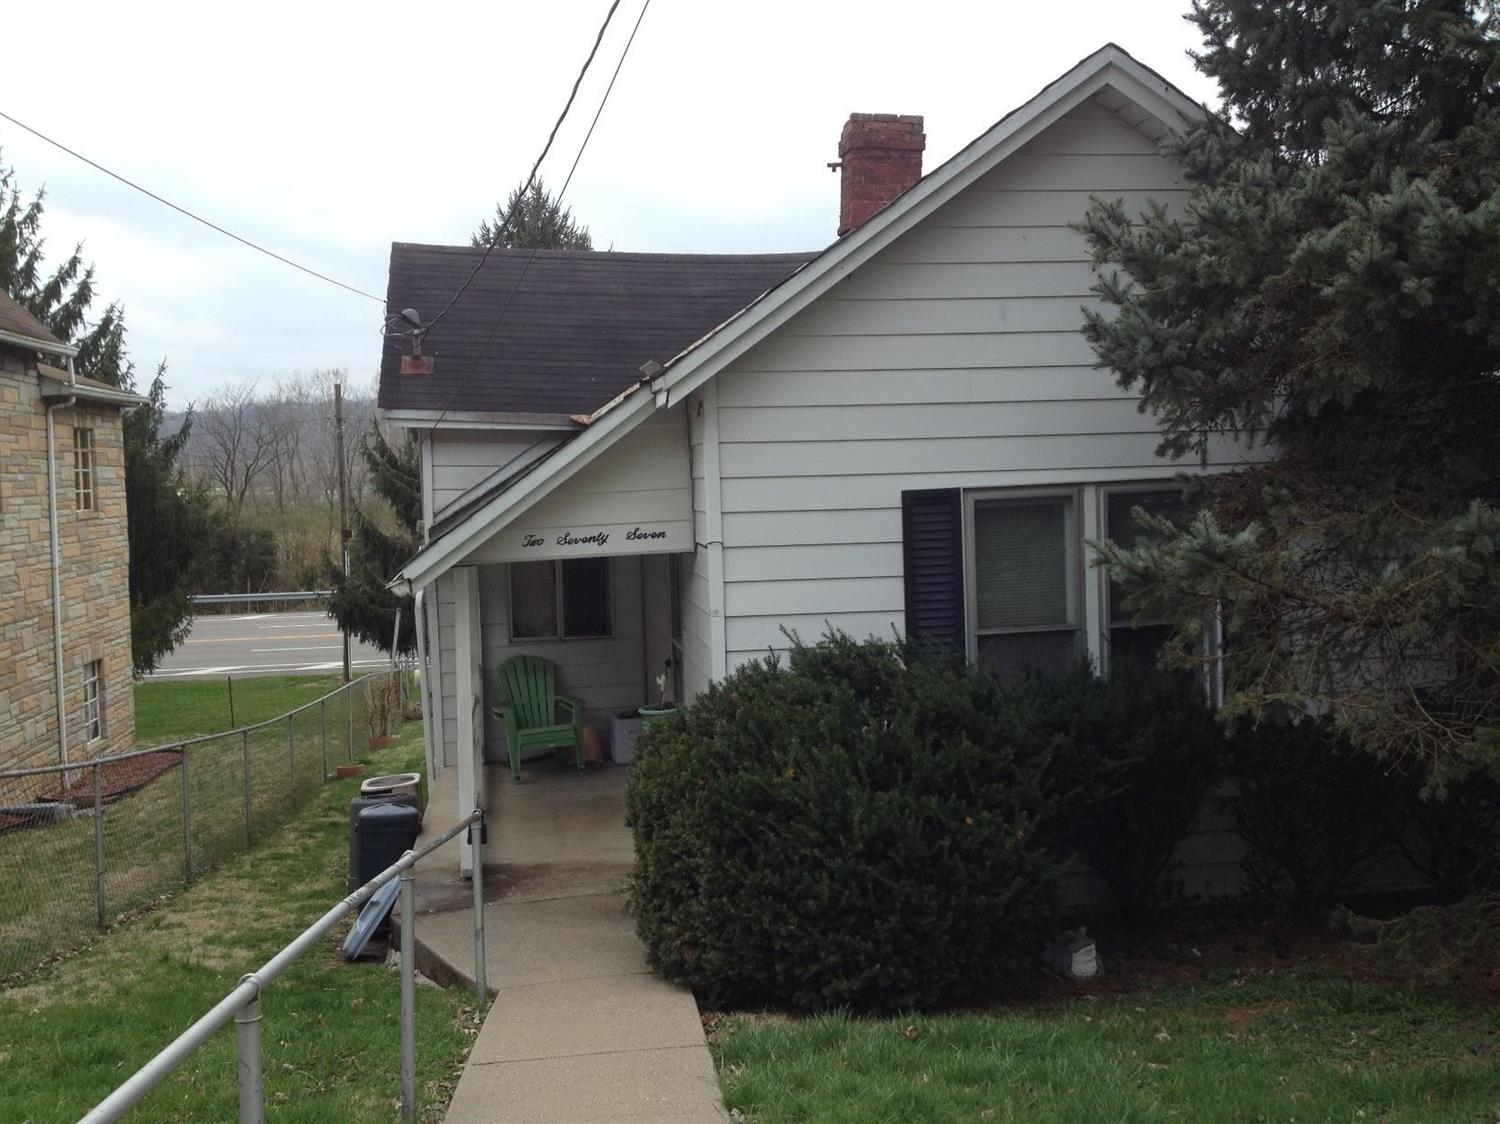 Property for sale at 277 Main Street, Addyston,  Ohio 45001